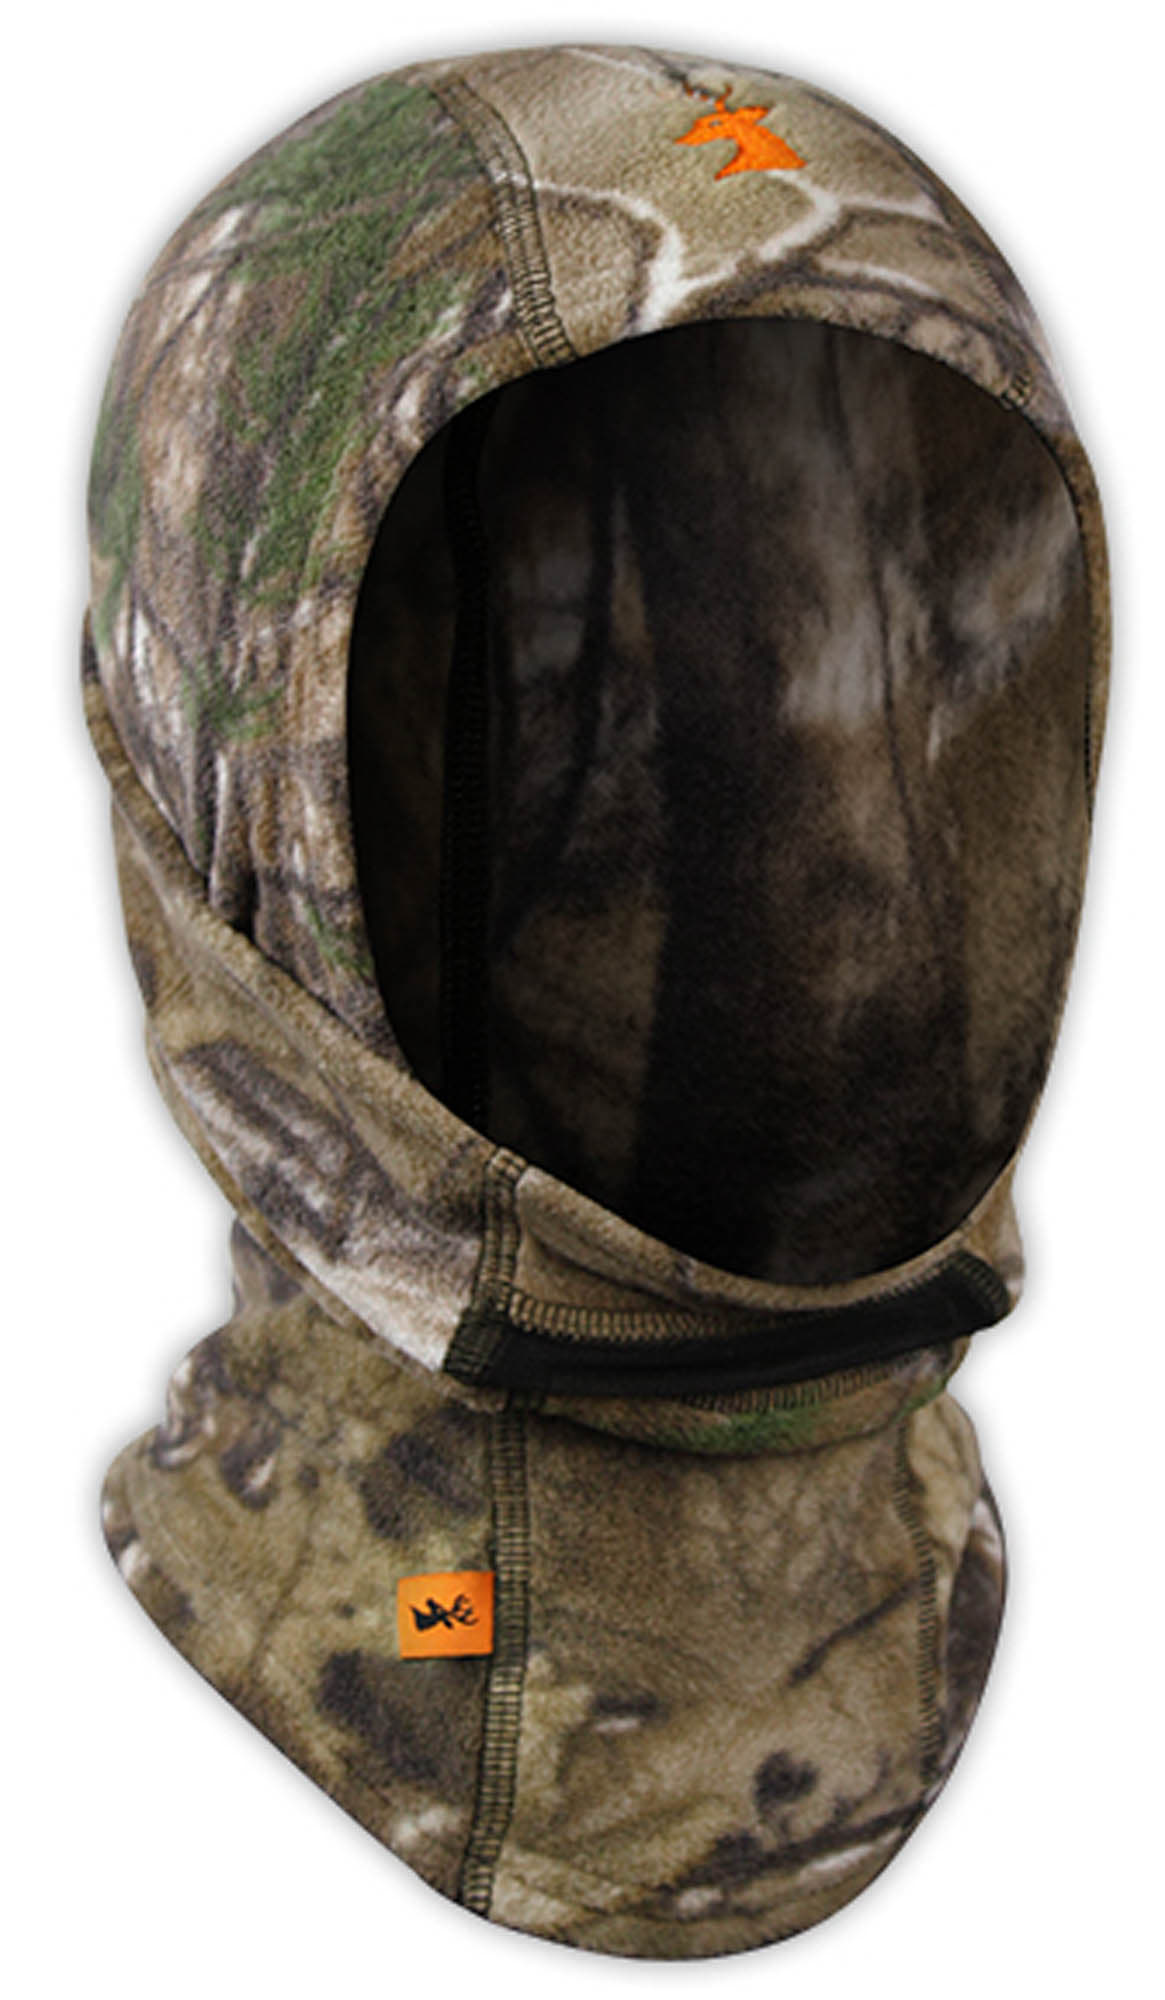 A50611-1-Cagoule polaire multi-usage camo - Spika - A50611